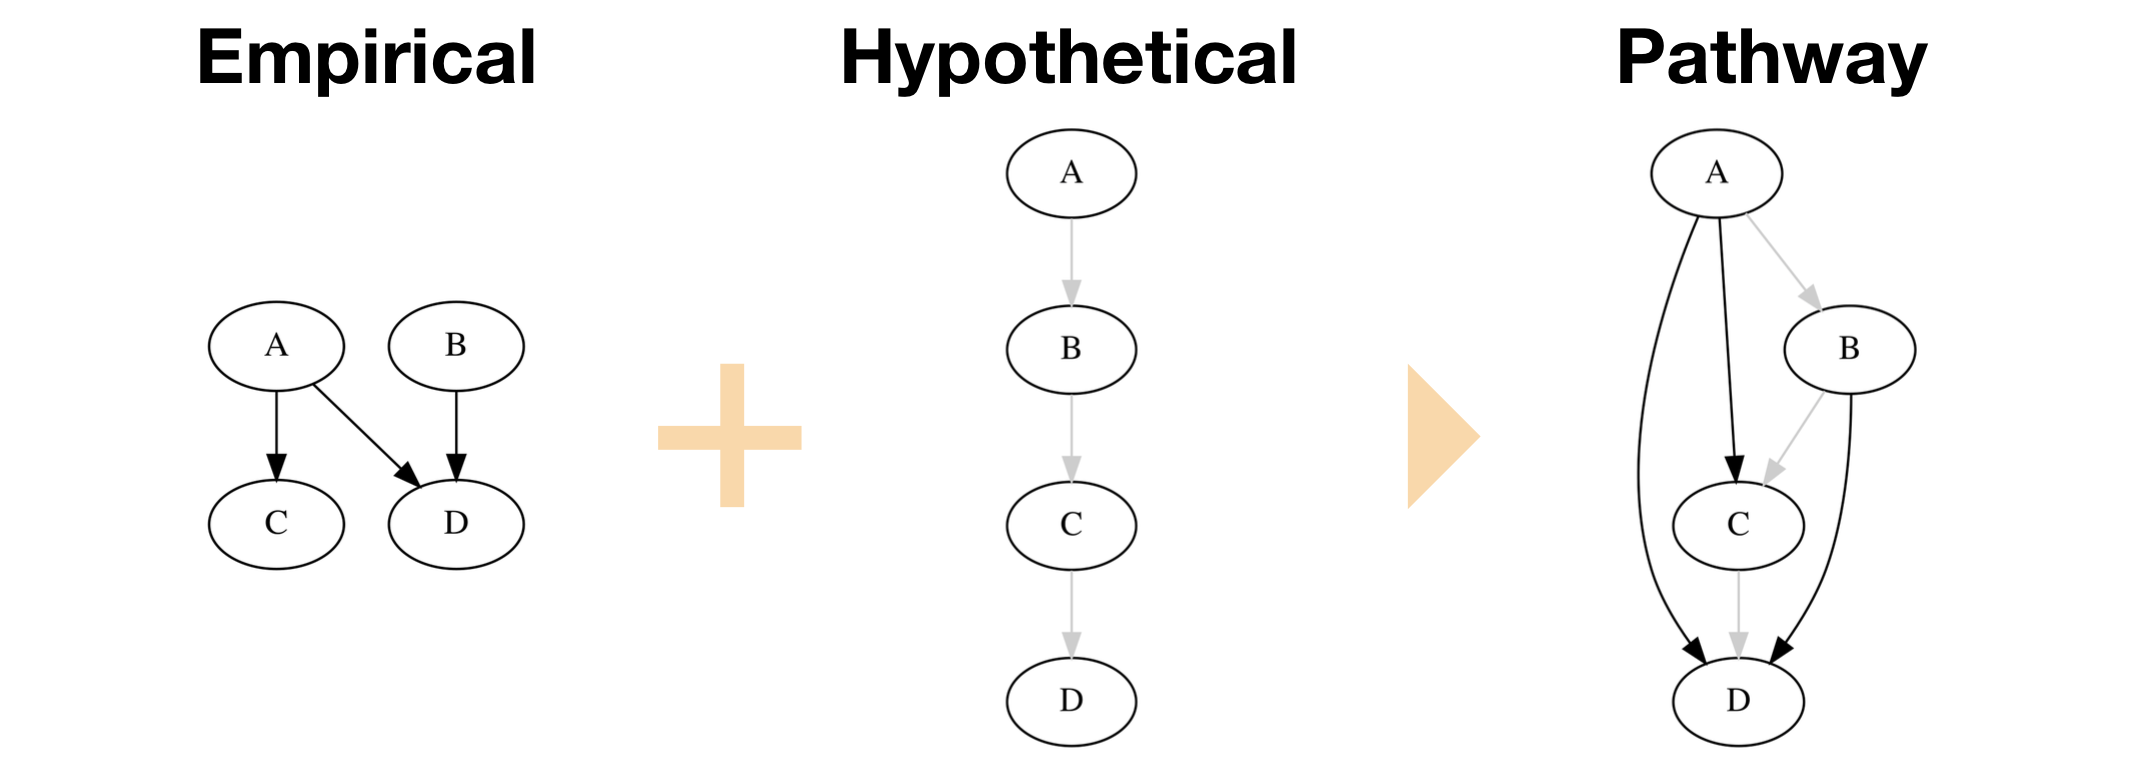 An illustration of our new feature to represent hypothetical causal relations